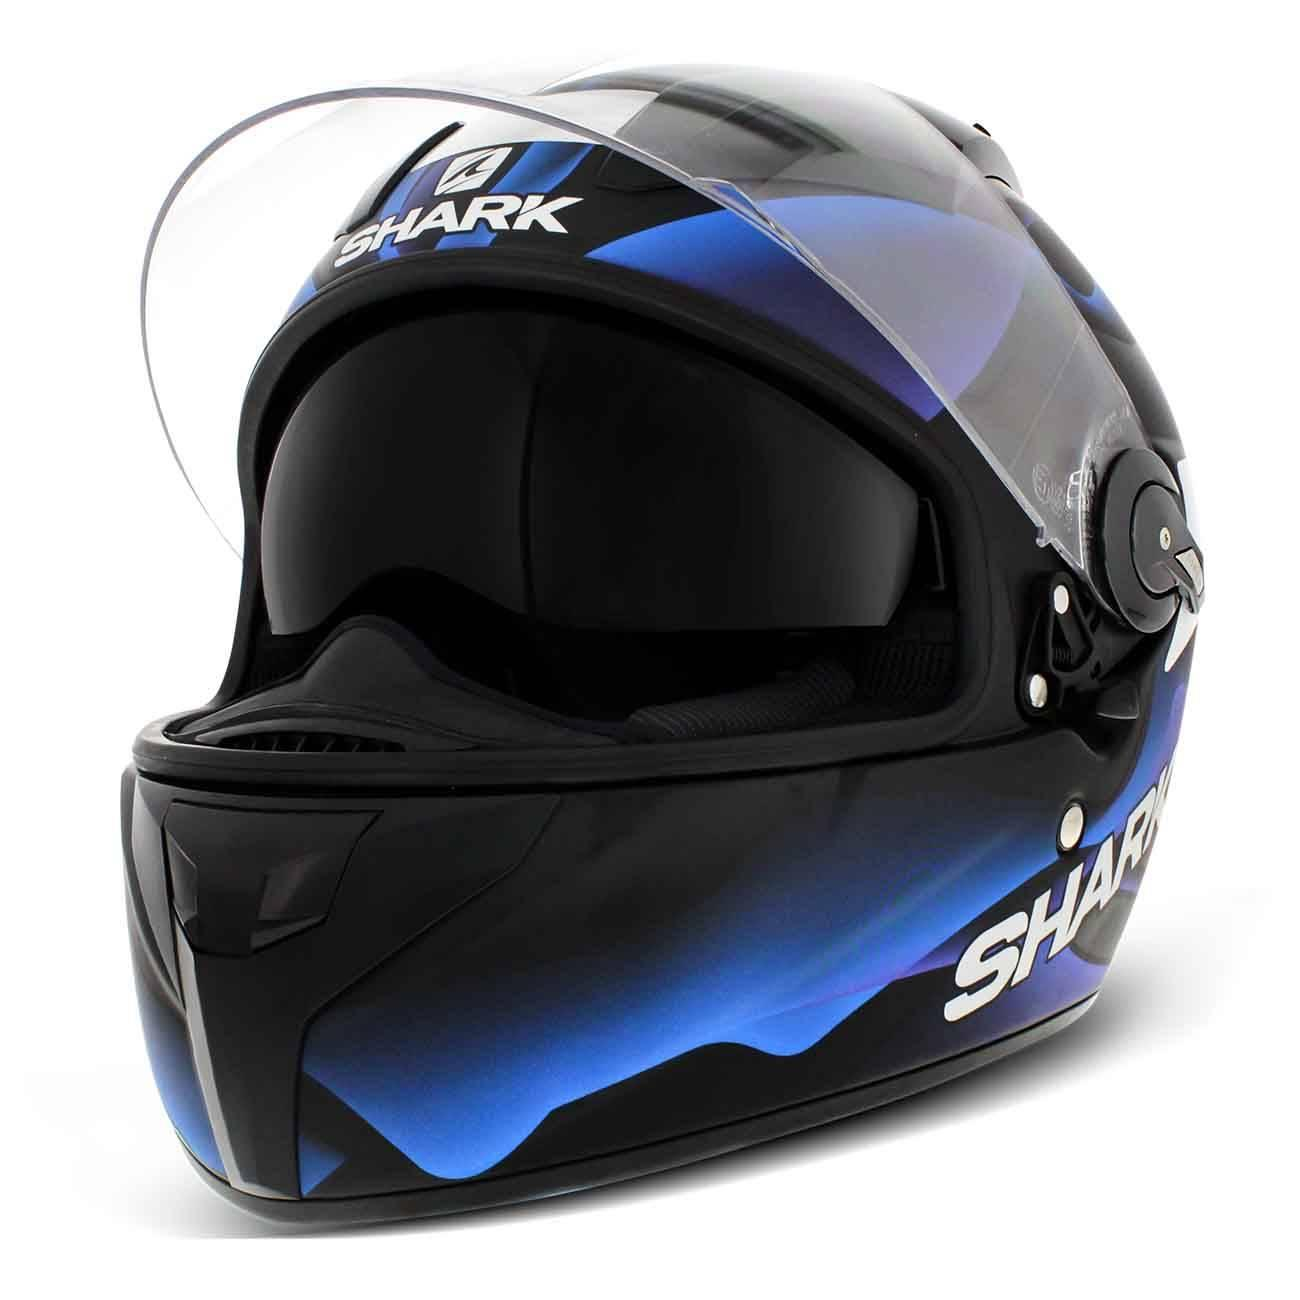 Capacete shark s800 fashion Casey Anthony Crime Scene Evidence Photos Video